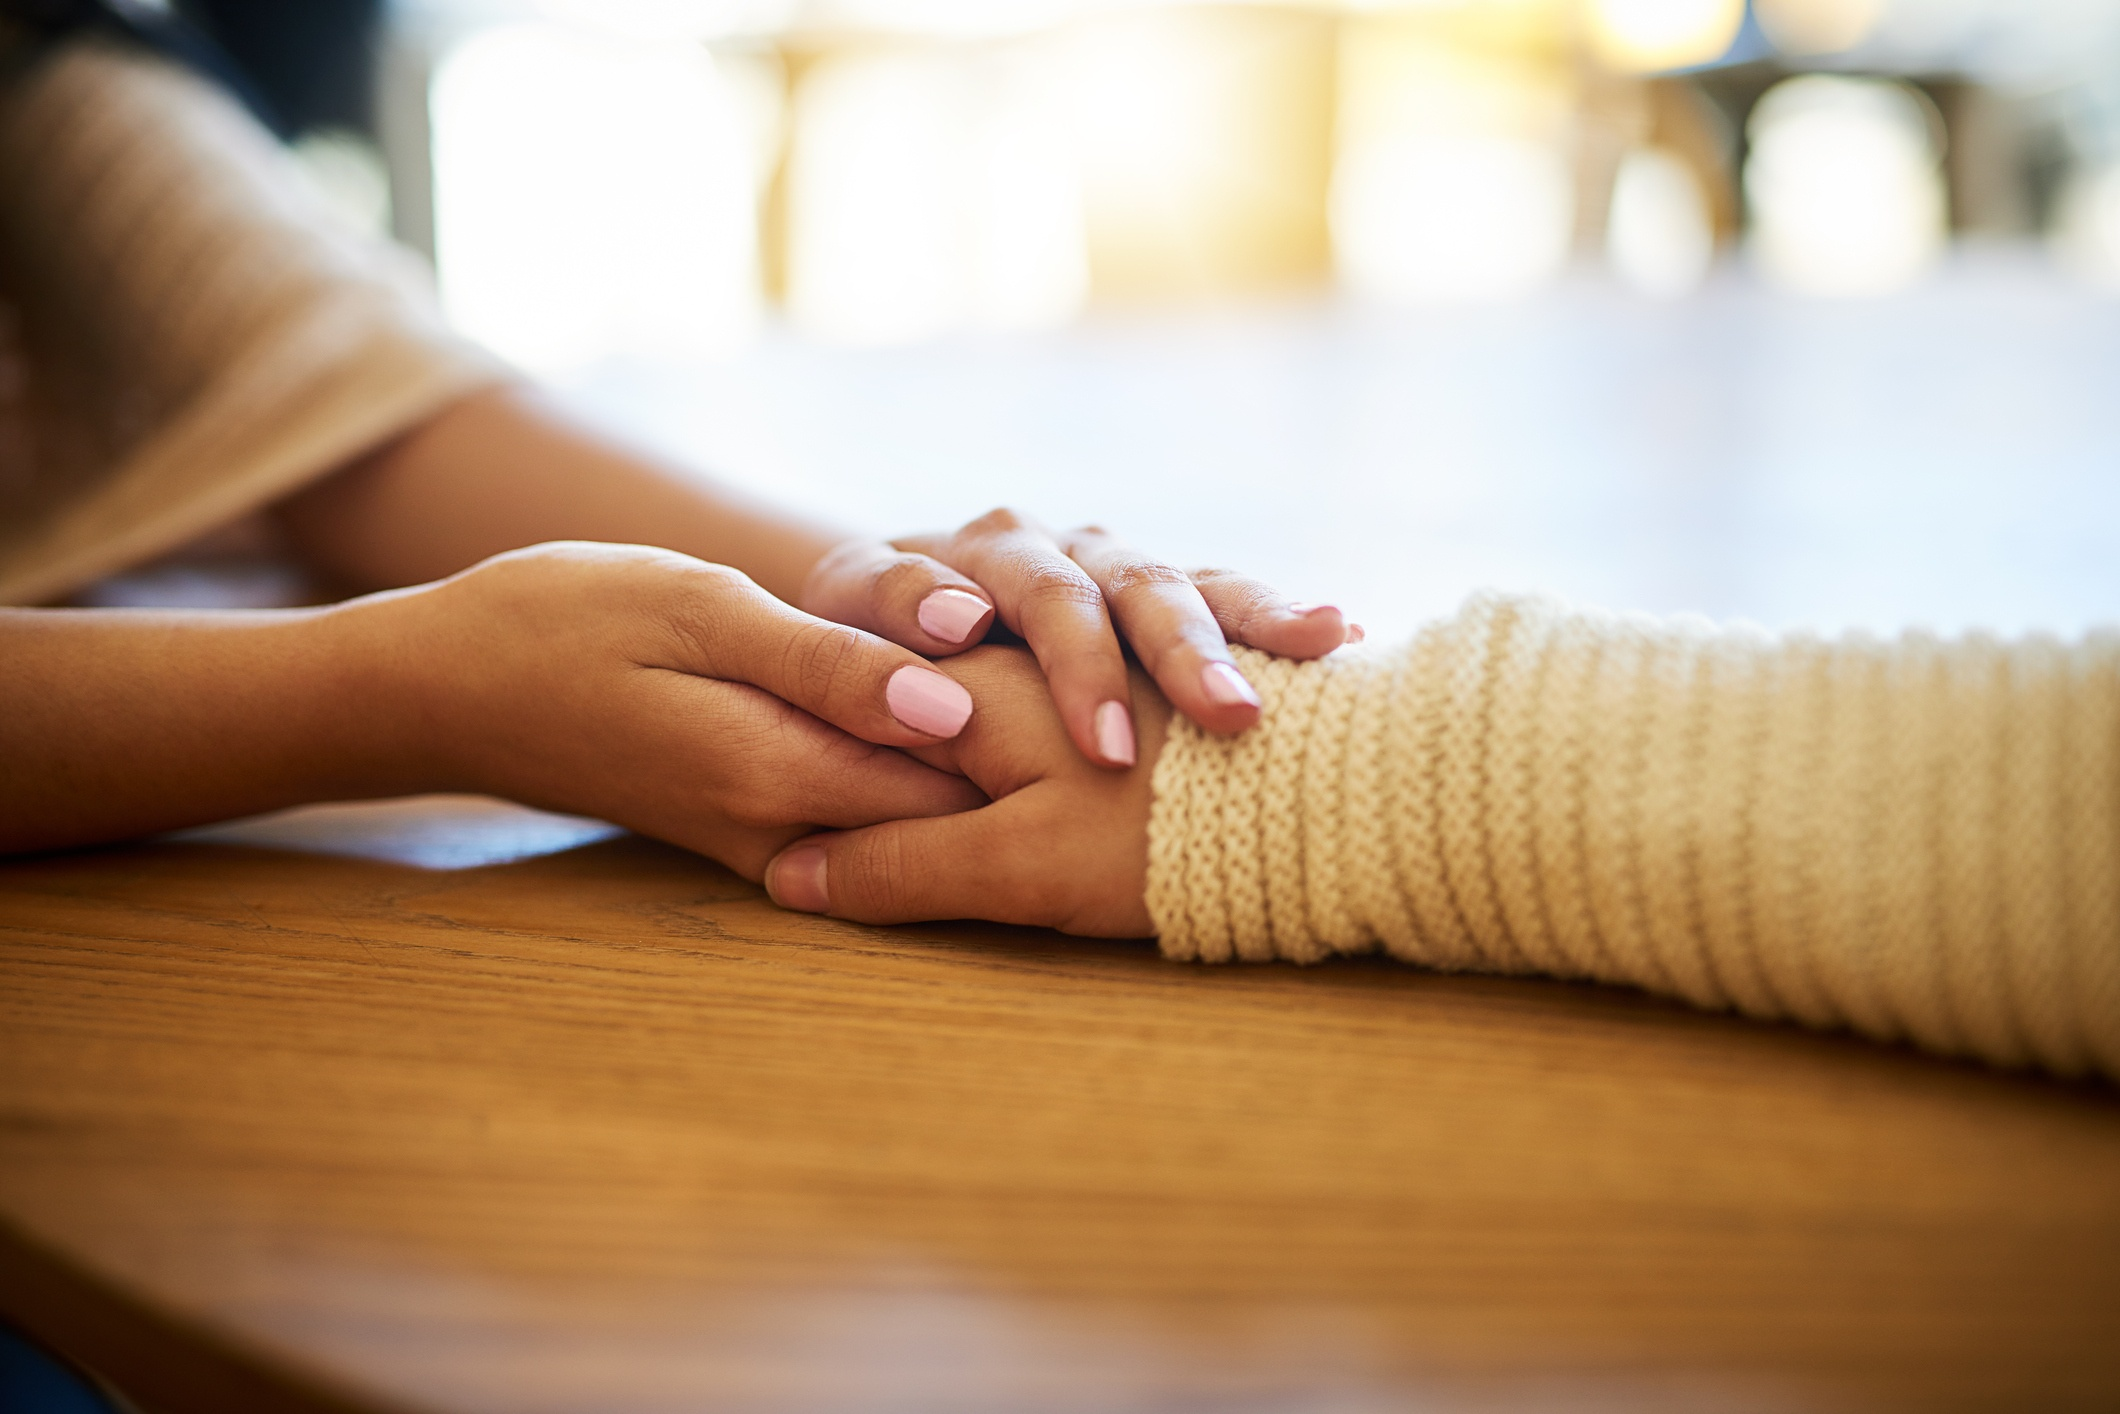 How to forgive someone through understanding